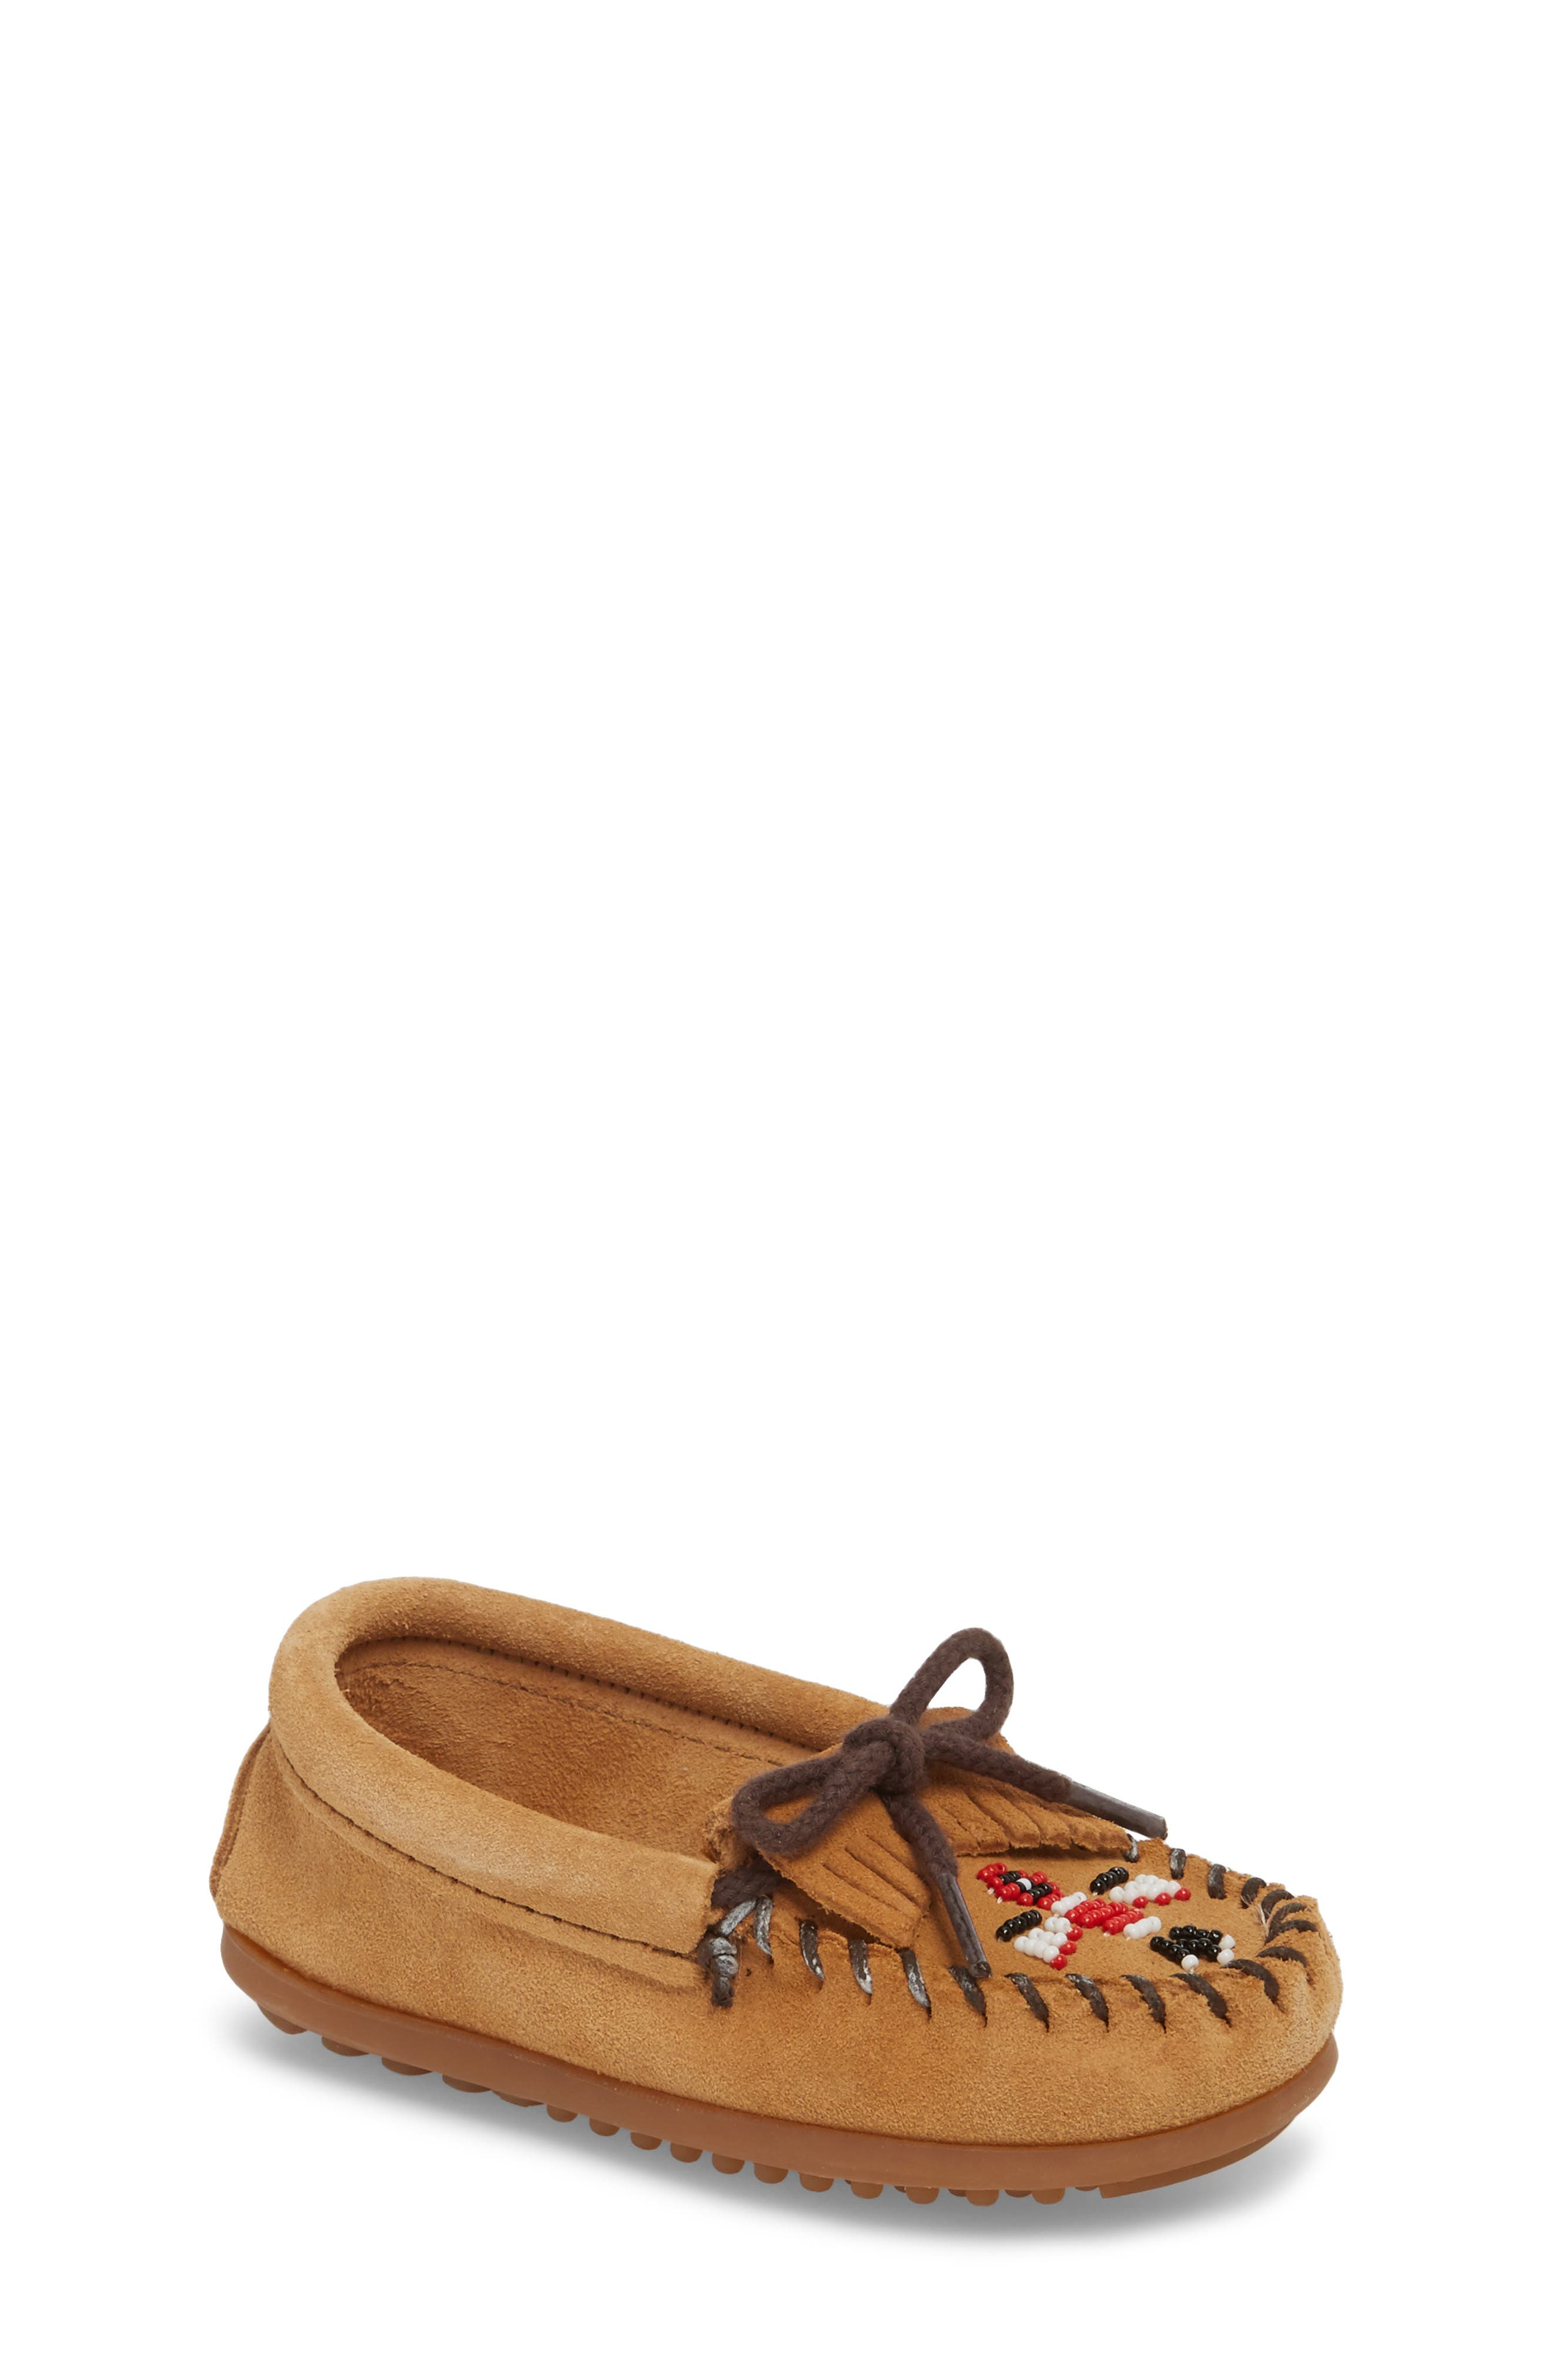 'Thunderbird' Moccasin,                         Main,                         color, Taupe